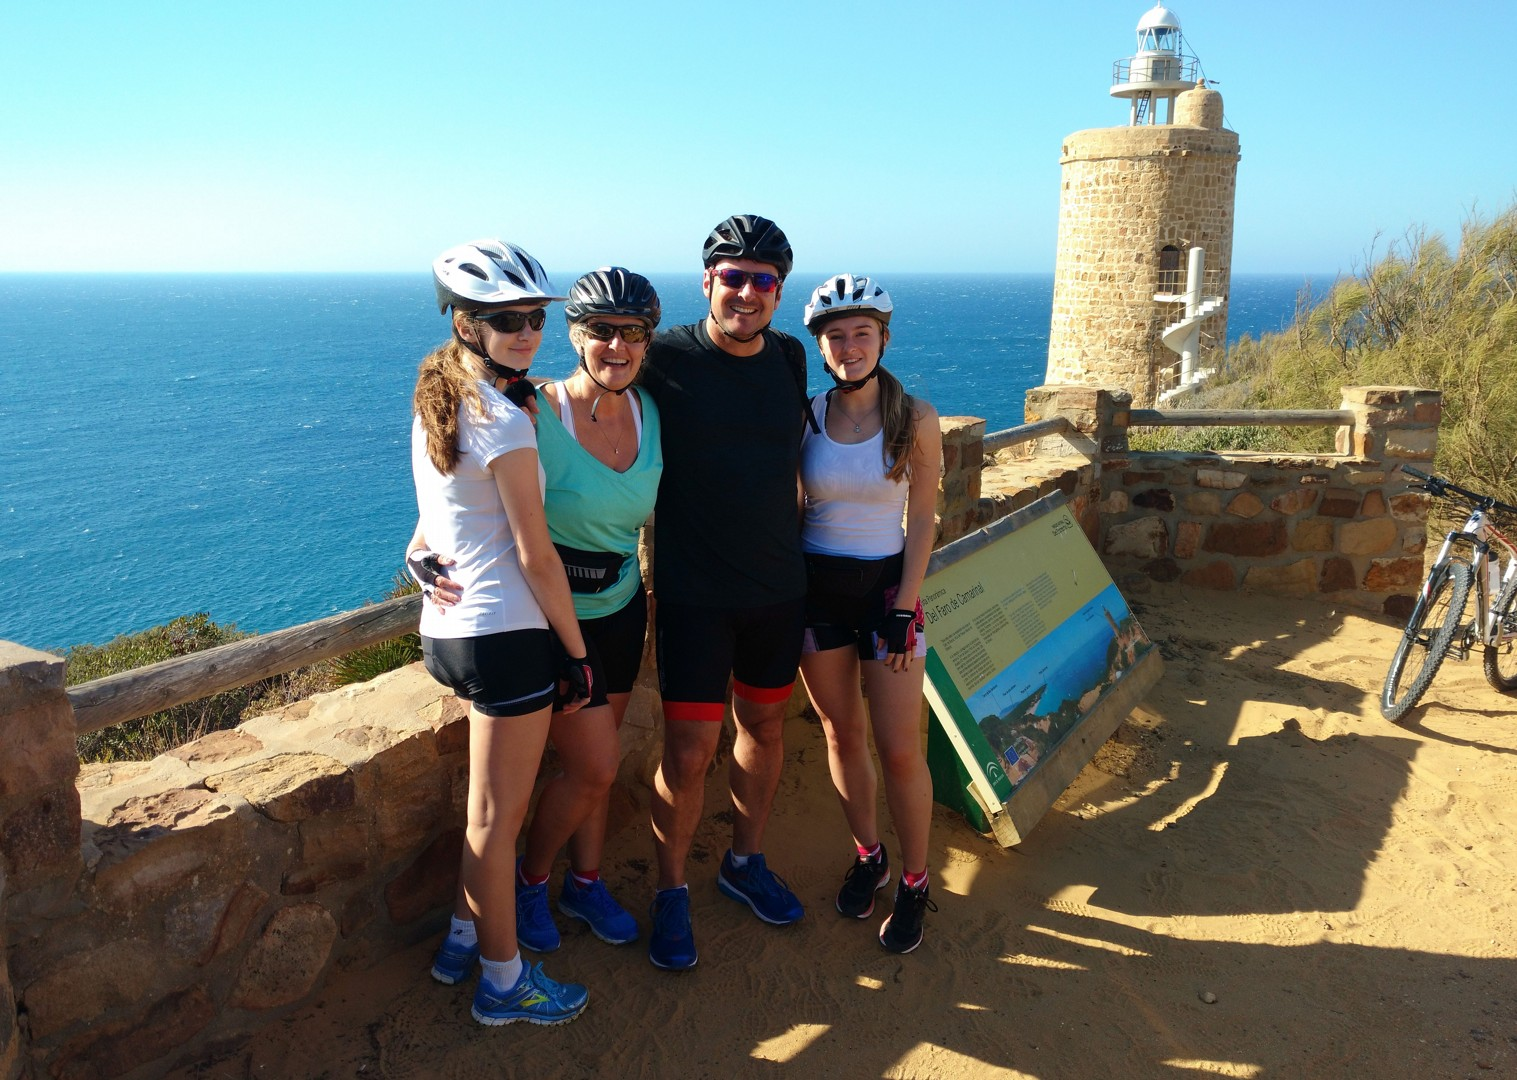 family-experience-south-of-spain-fun-kids-beaches.jpg - Southern Spain - Coastal Adventurer - Self-Guided Family Cycling Holiday - Family Cycling